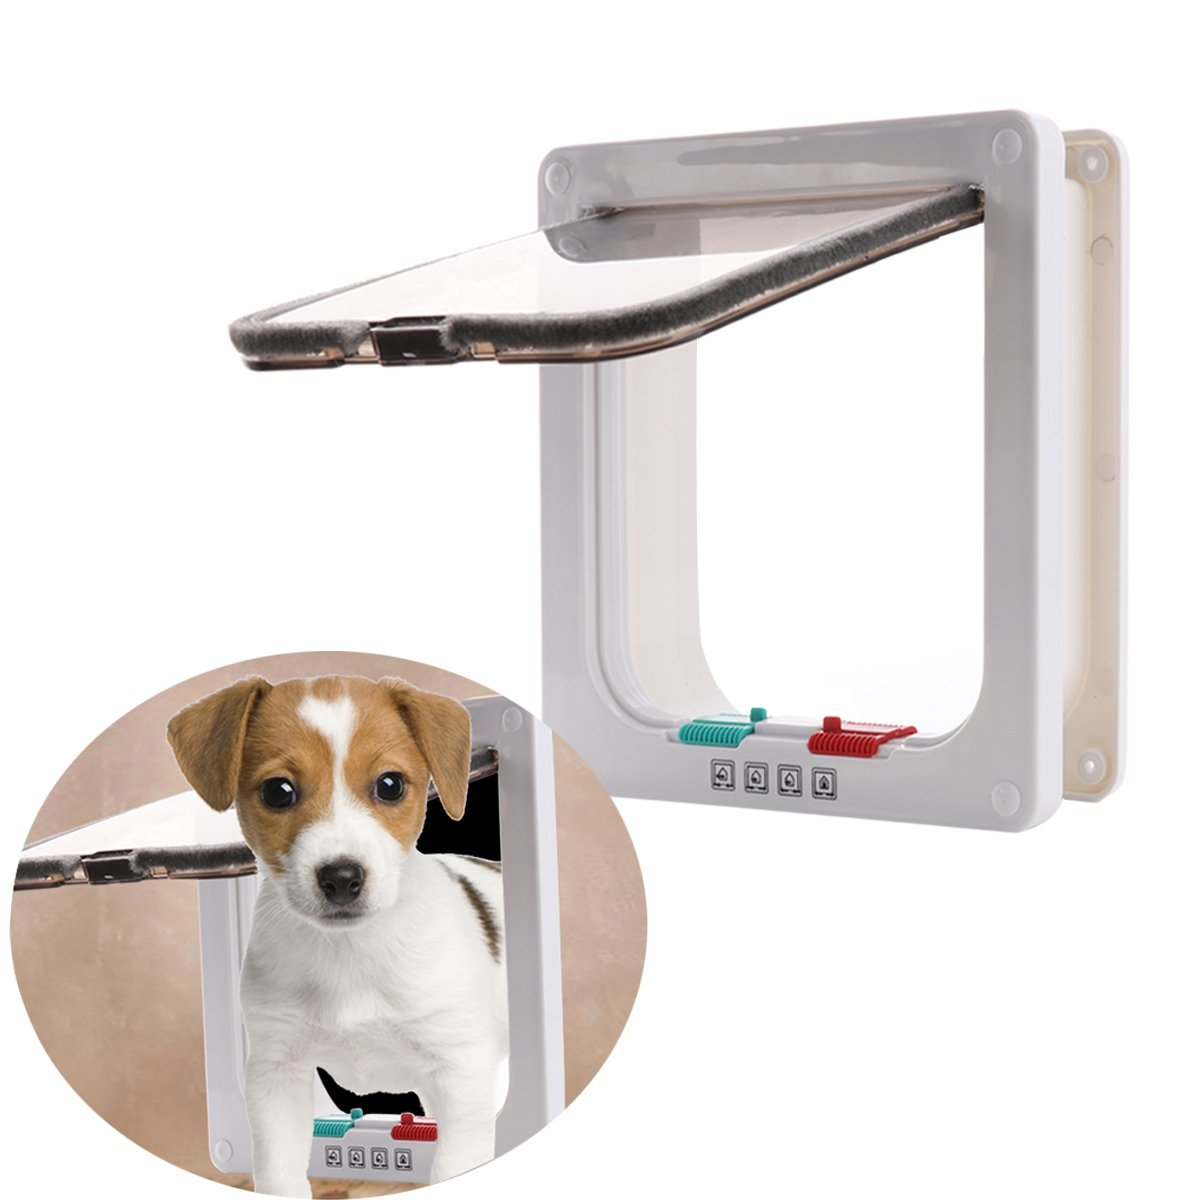 Cat Flaps Cat Doors Pet Supplies Locking Kitten White Door Kit for Small Animals for Sliding Door, Secures Your Pet with 4 Way Locking Cat Door White Large Size by CHICTRY (Image #4)